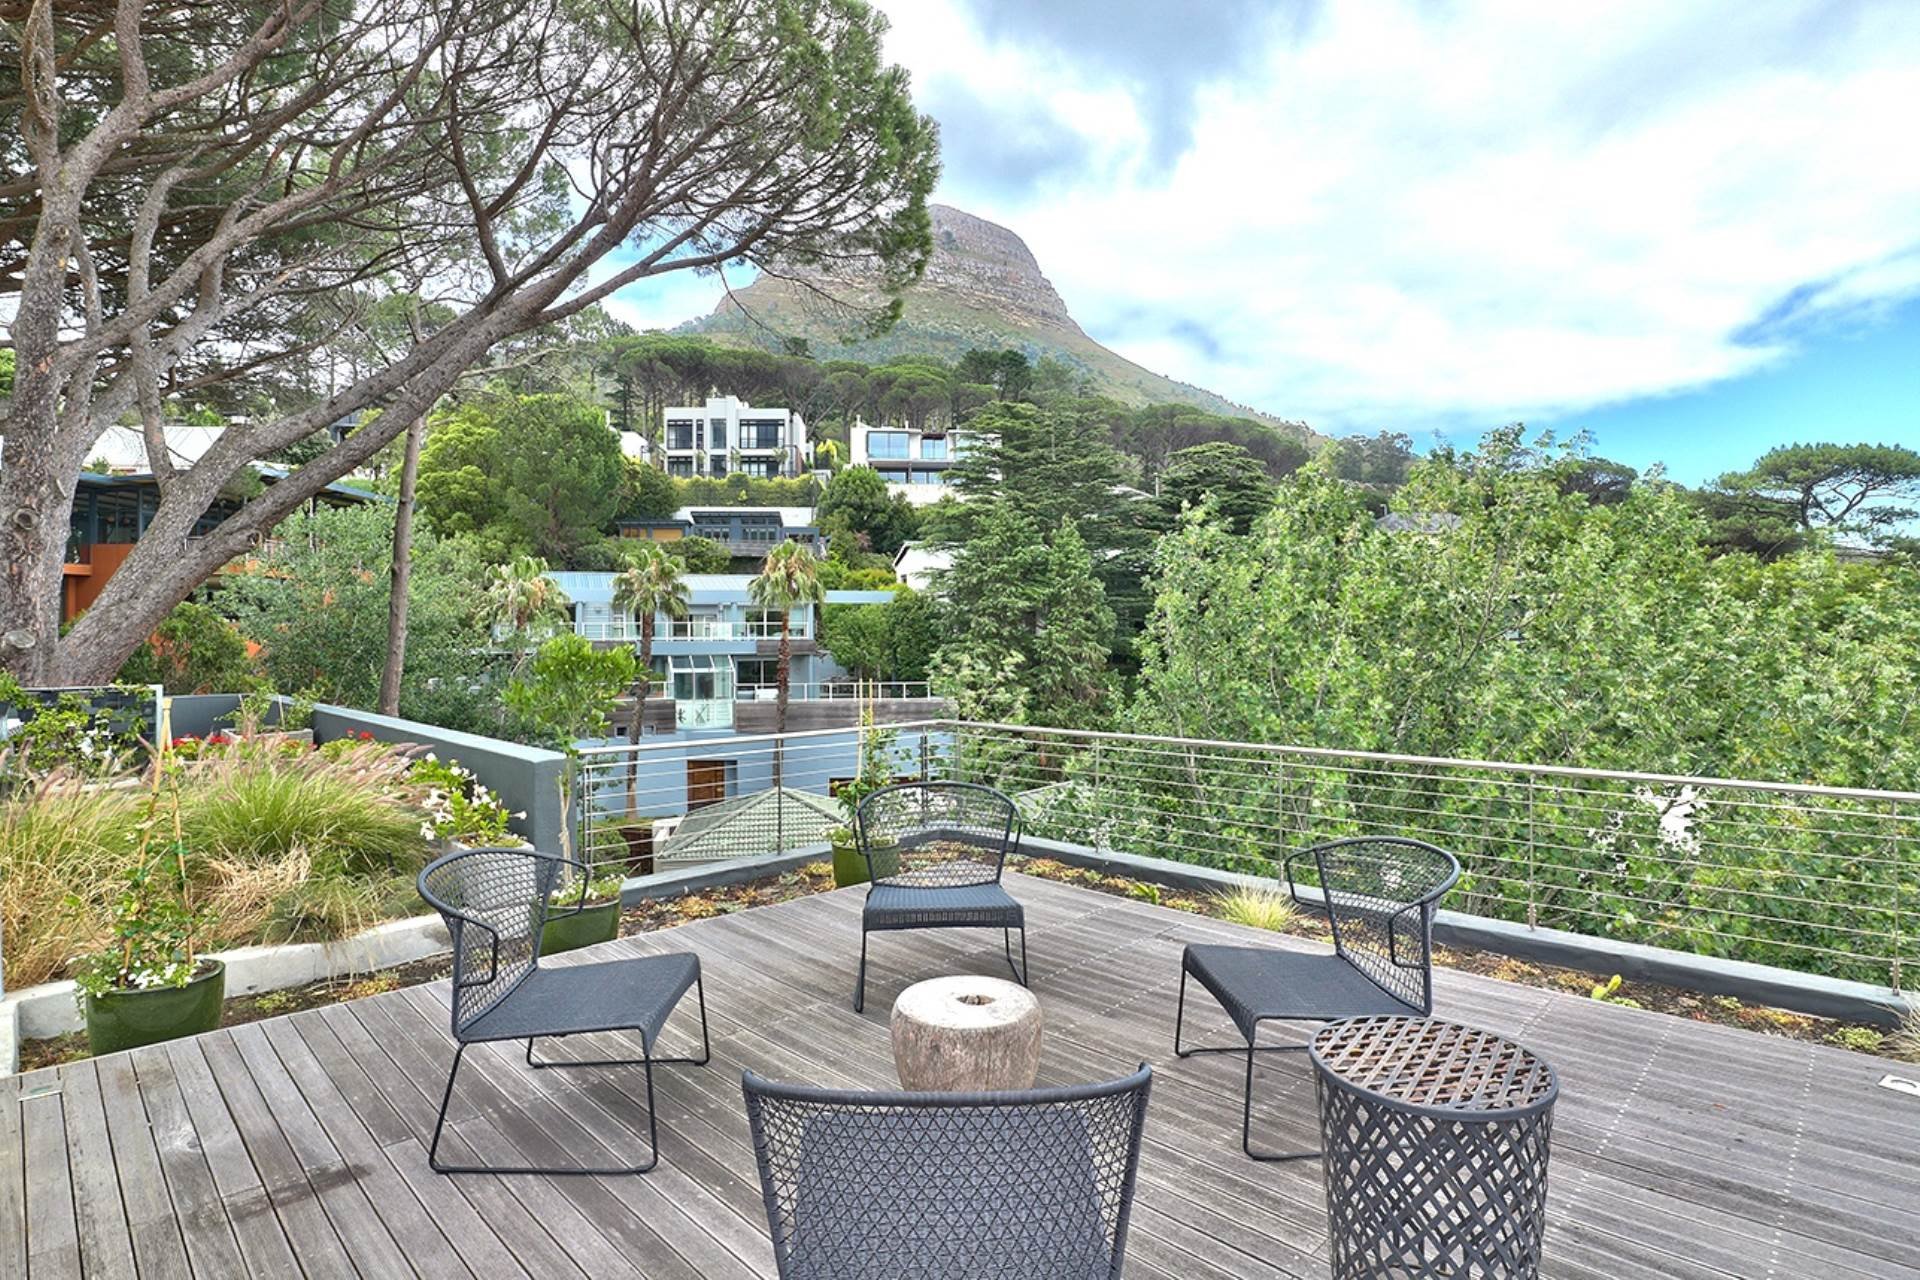 House for sale in higgovale cape town western cape for r 39995000